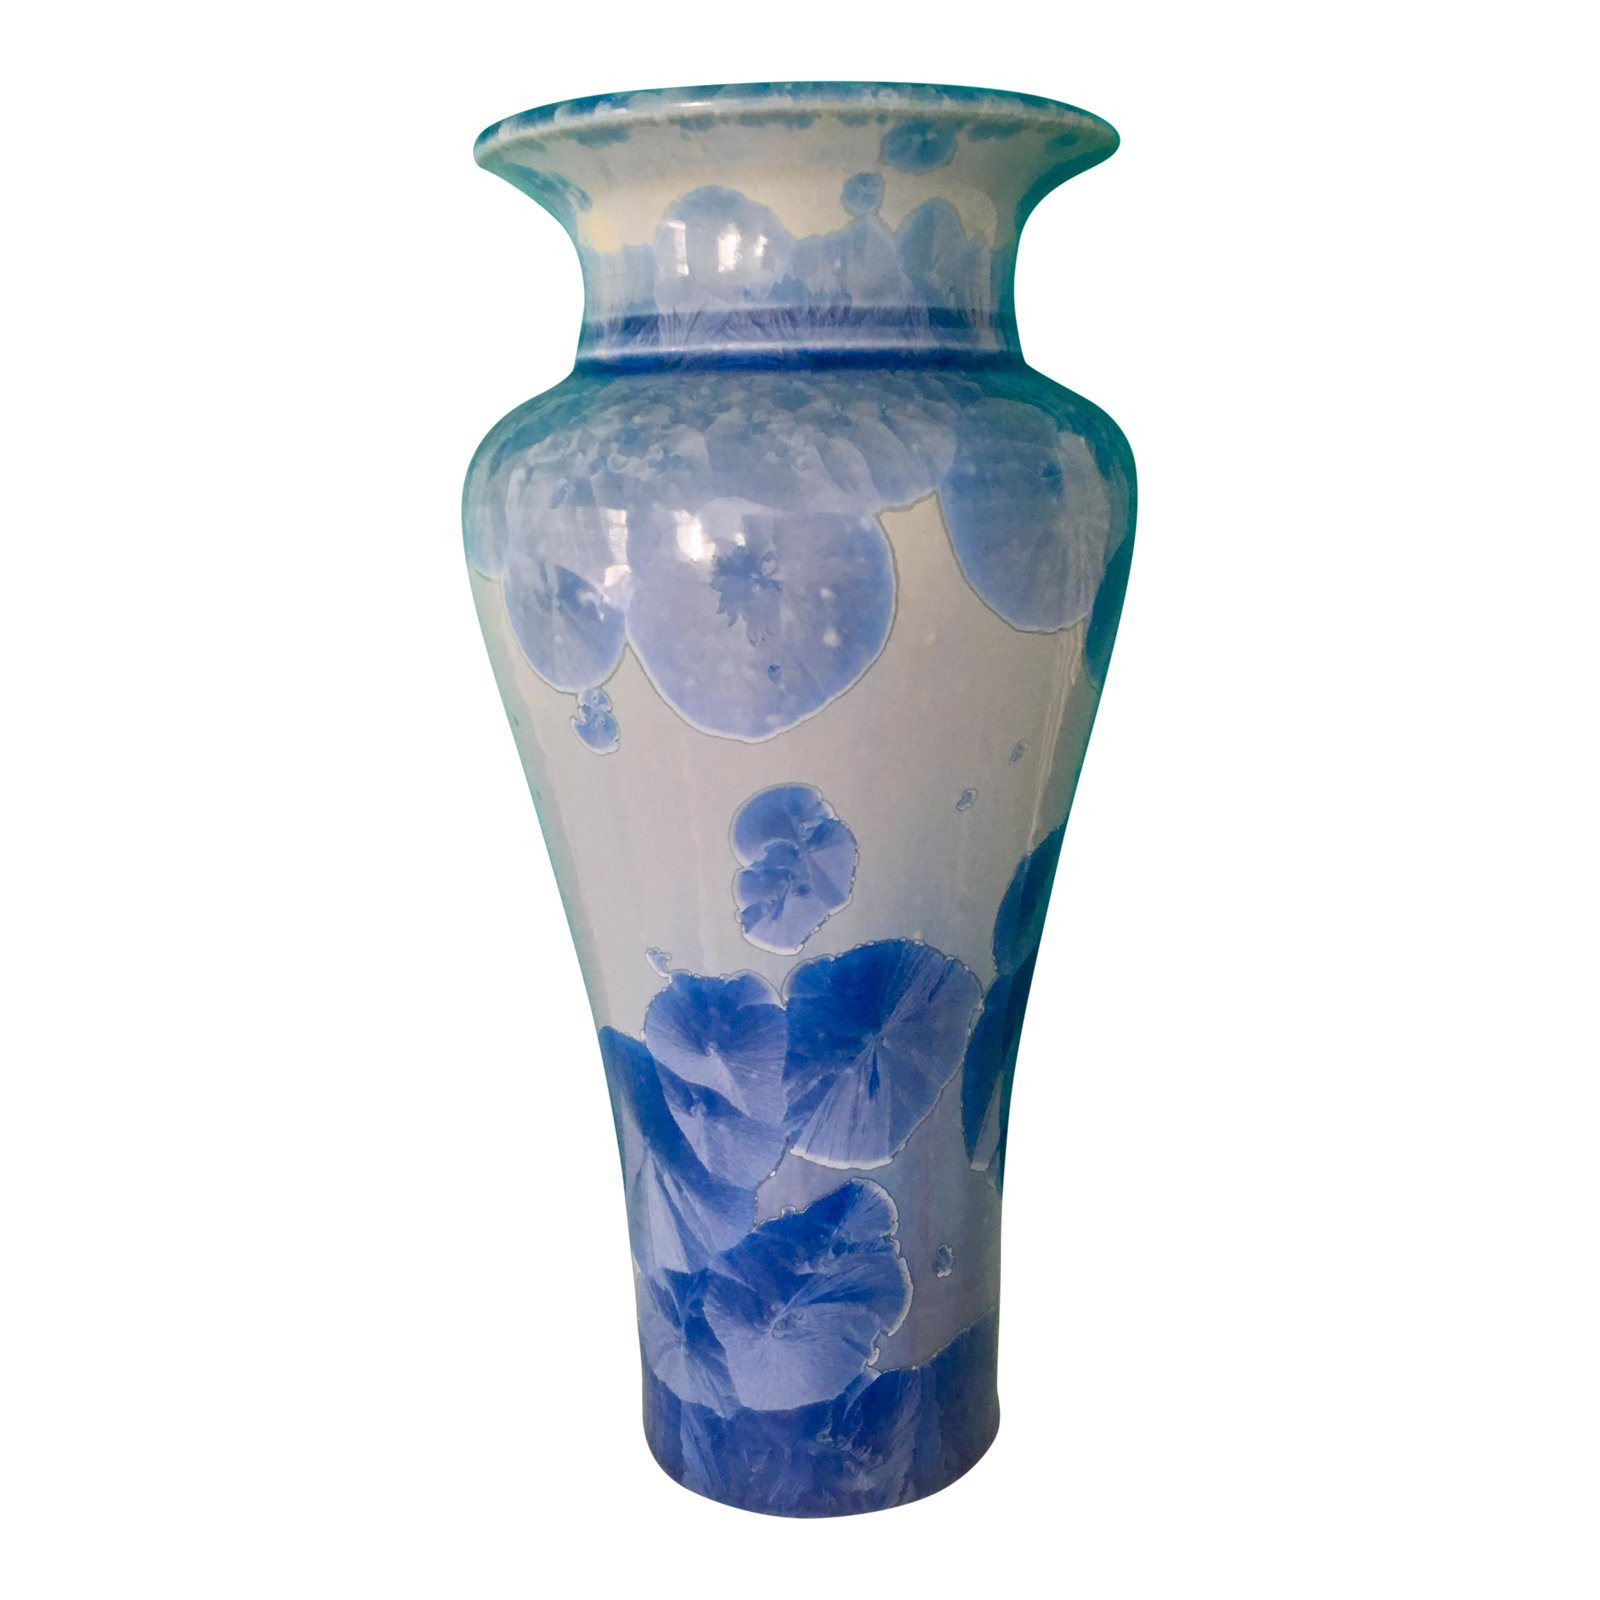 blue and white urn vases of js feltman crystalline pottery vase chairish pertaining to jands feltman crystalline pottery vase 4954